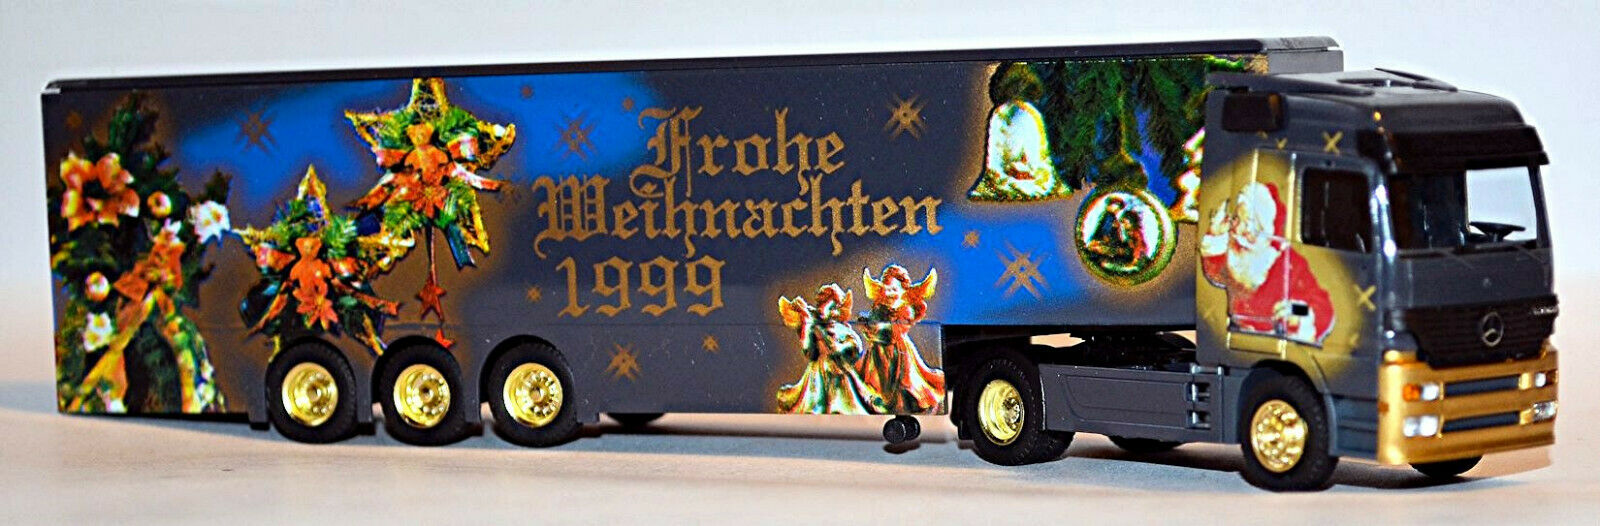 Mercedes Actros LH Koffersz Merry Christmas 1999 1 87 Albedo 250022